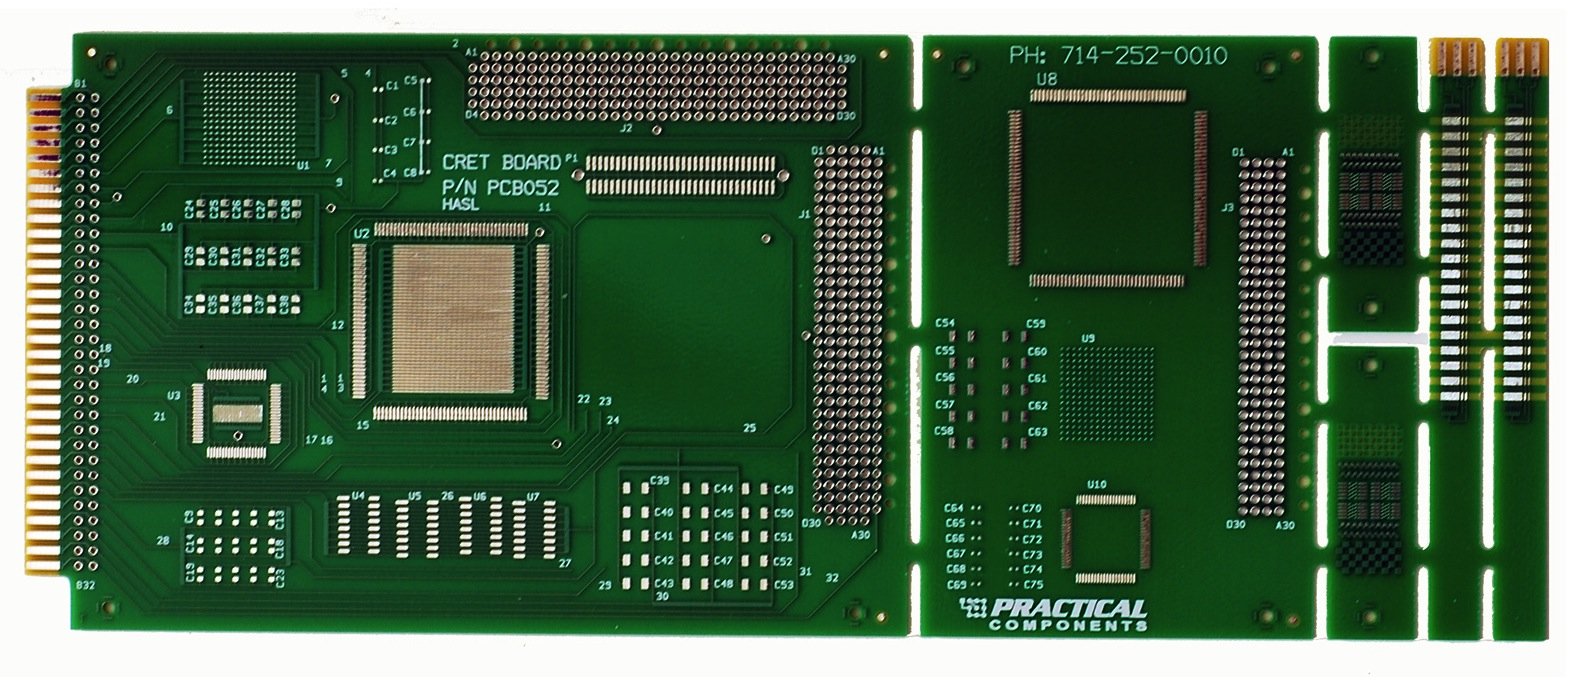 Test Boards for Cleanliness and Conformal Coating